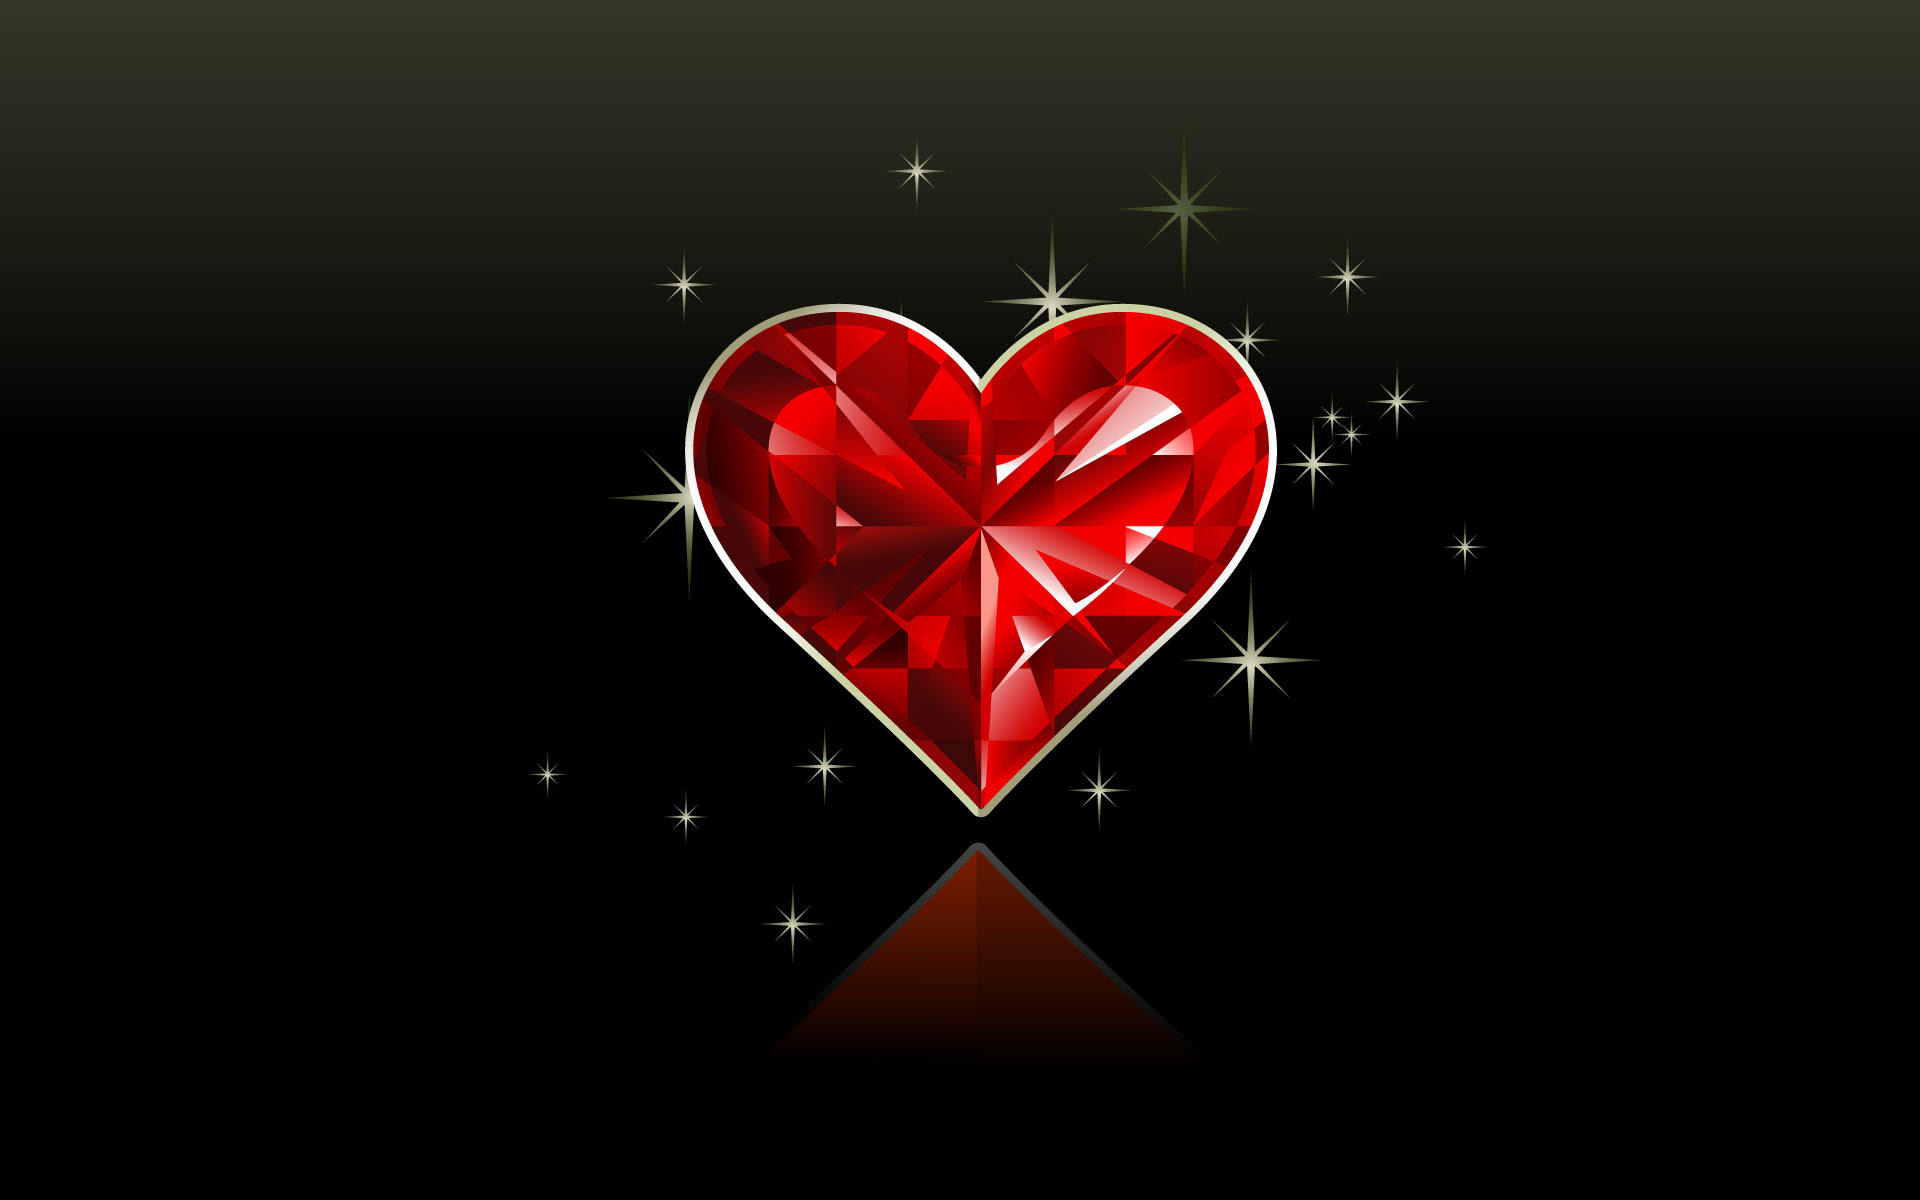 60 Wallpapers for Valentineu002639;s Day 1920x1200  HD Wallpapers